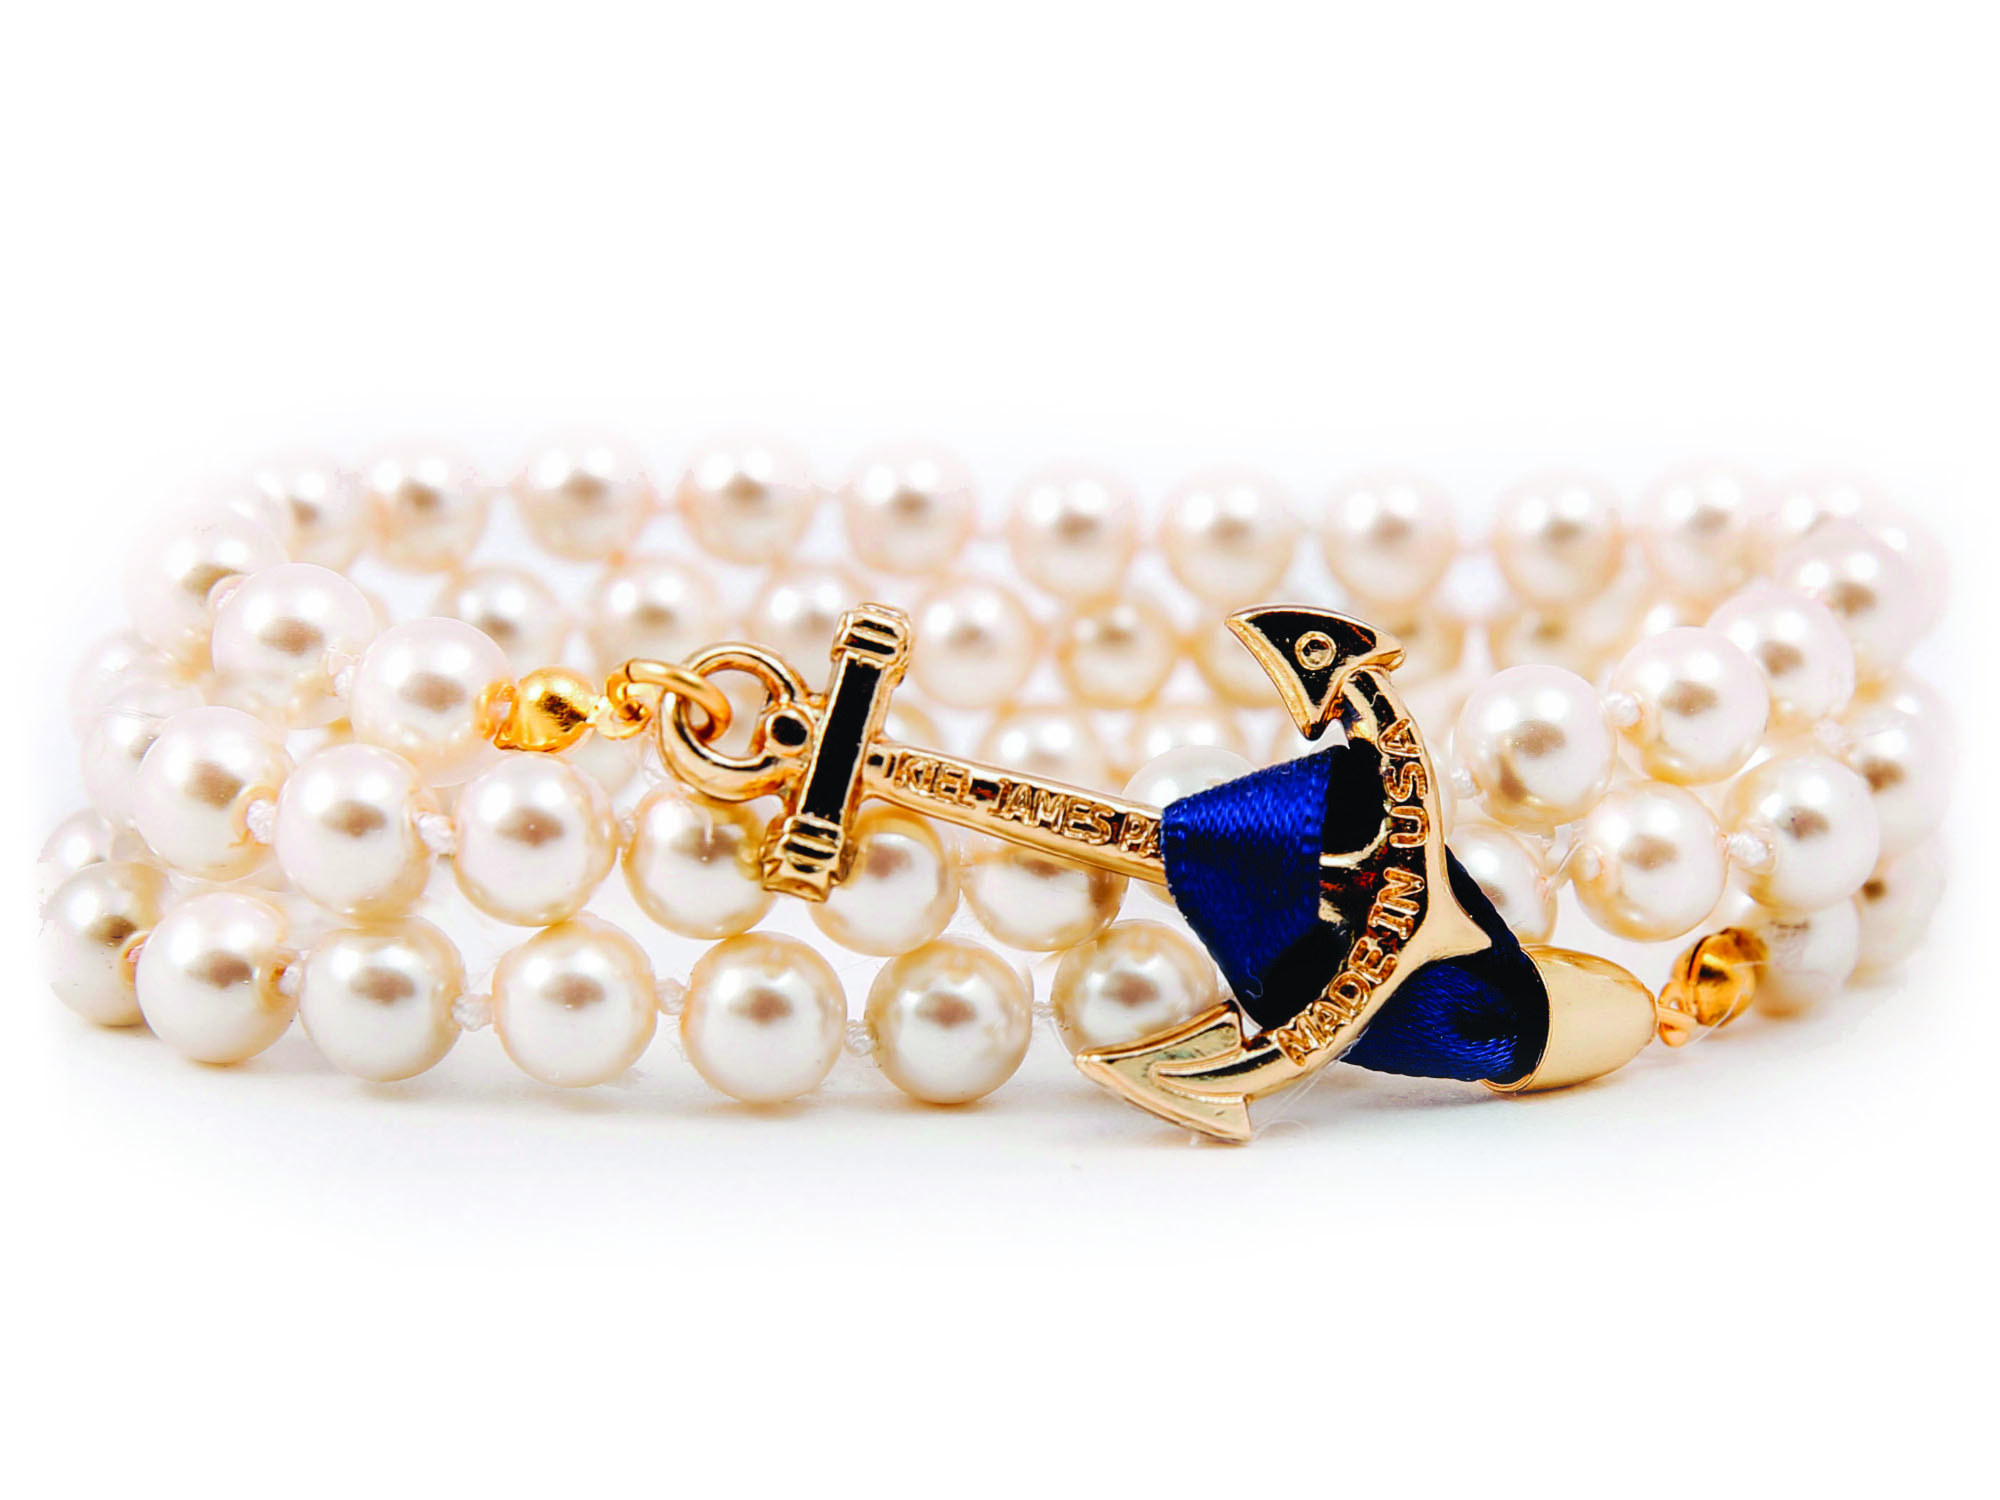 Atlantic Pearl Collection - Jackie O - by Kiel James Patrick